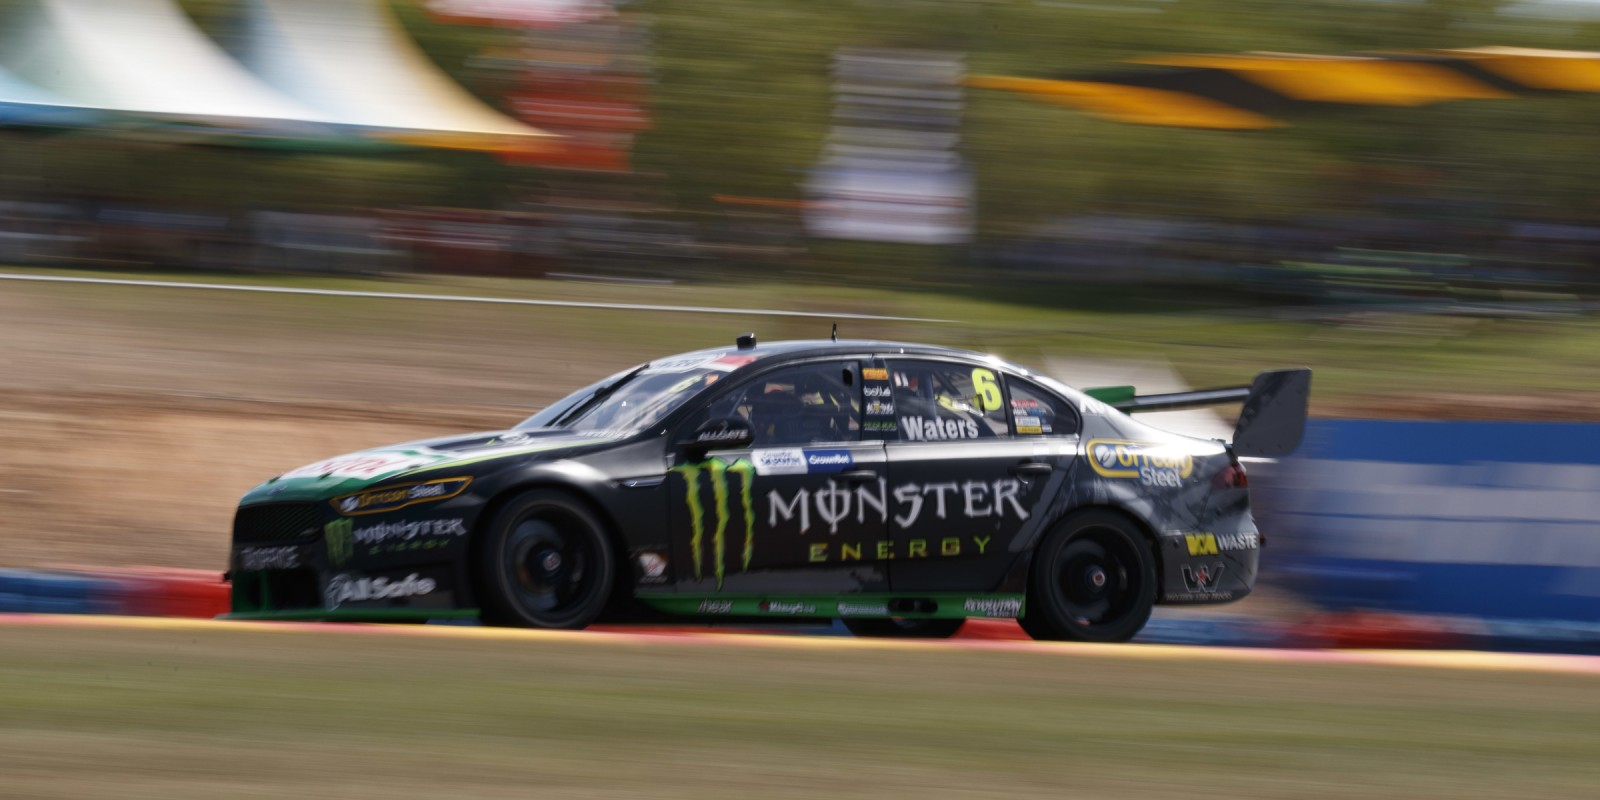 Supercars - Darwin - 2016 Prodrive Racing, Monster Energy Racing, Cameron Waters